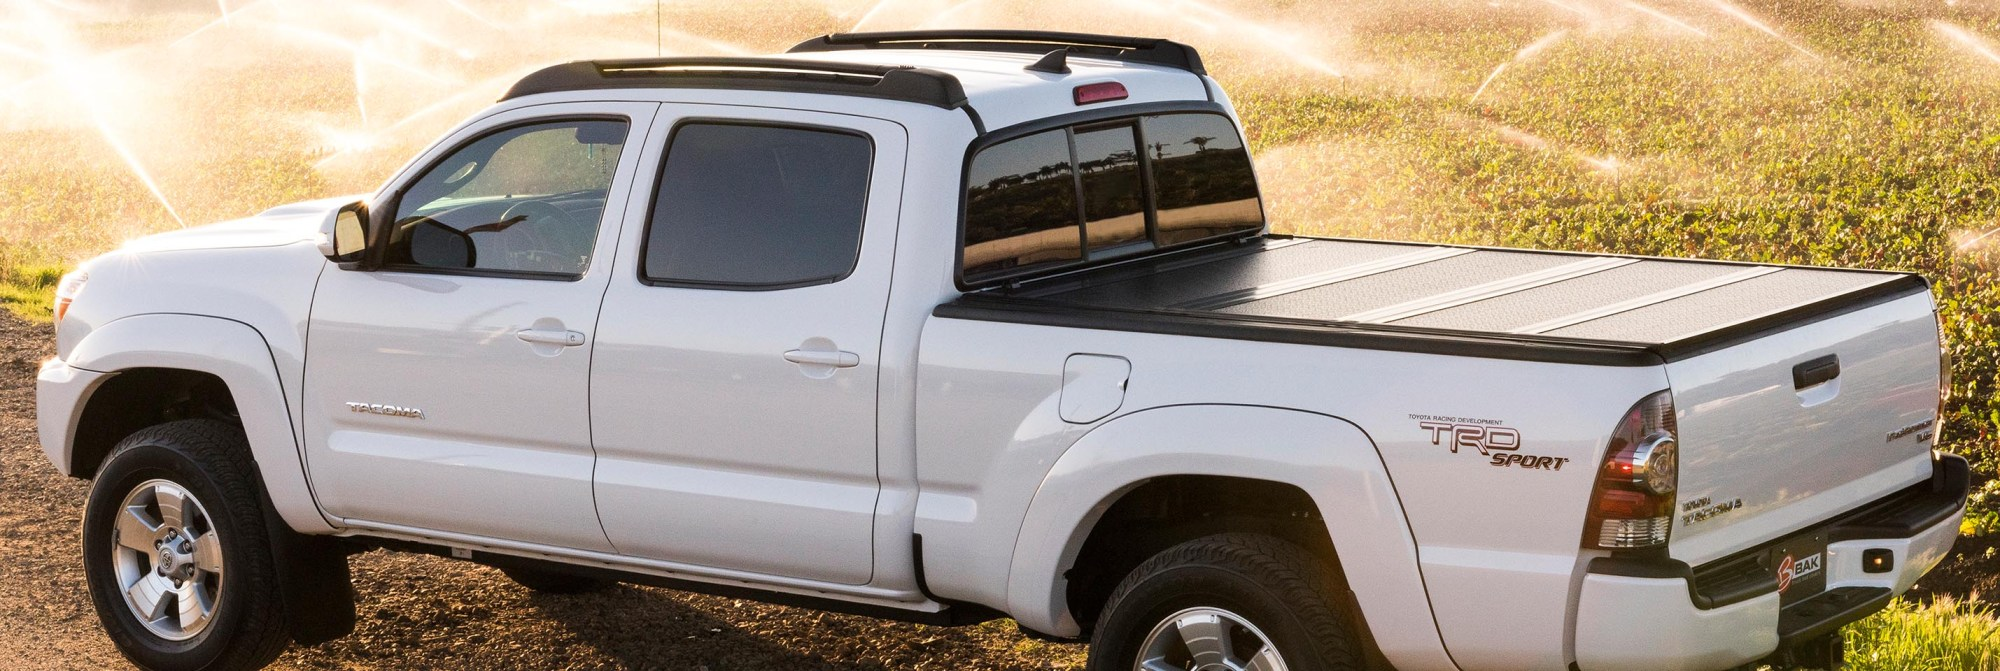 hight resolution of take a look at top customer picks for toyota tacoma tonneau covers read customer reviews and discover the most popular opening styles and brands for your